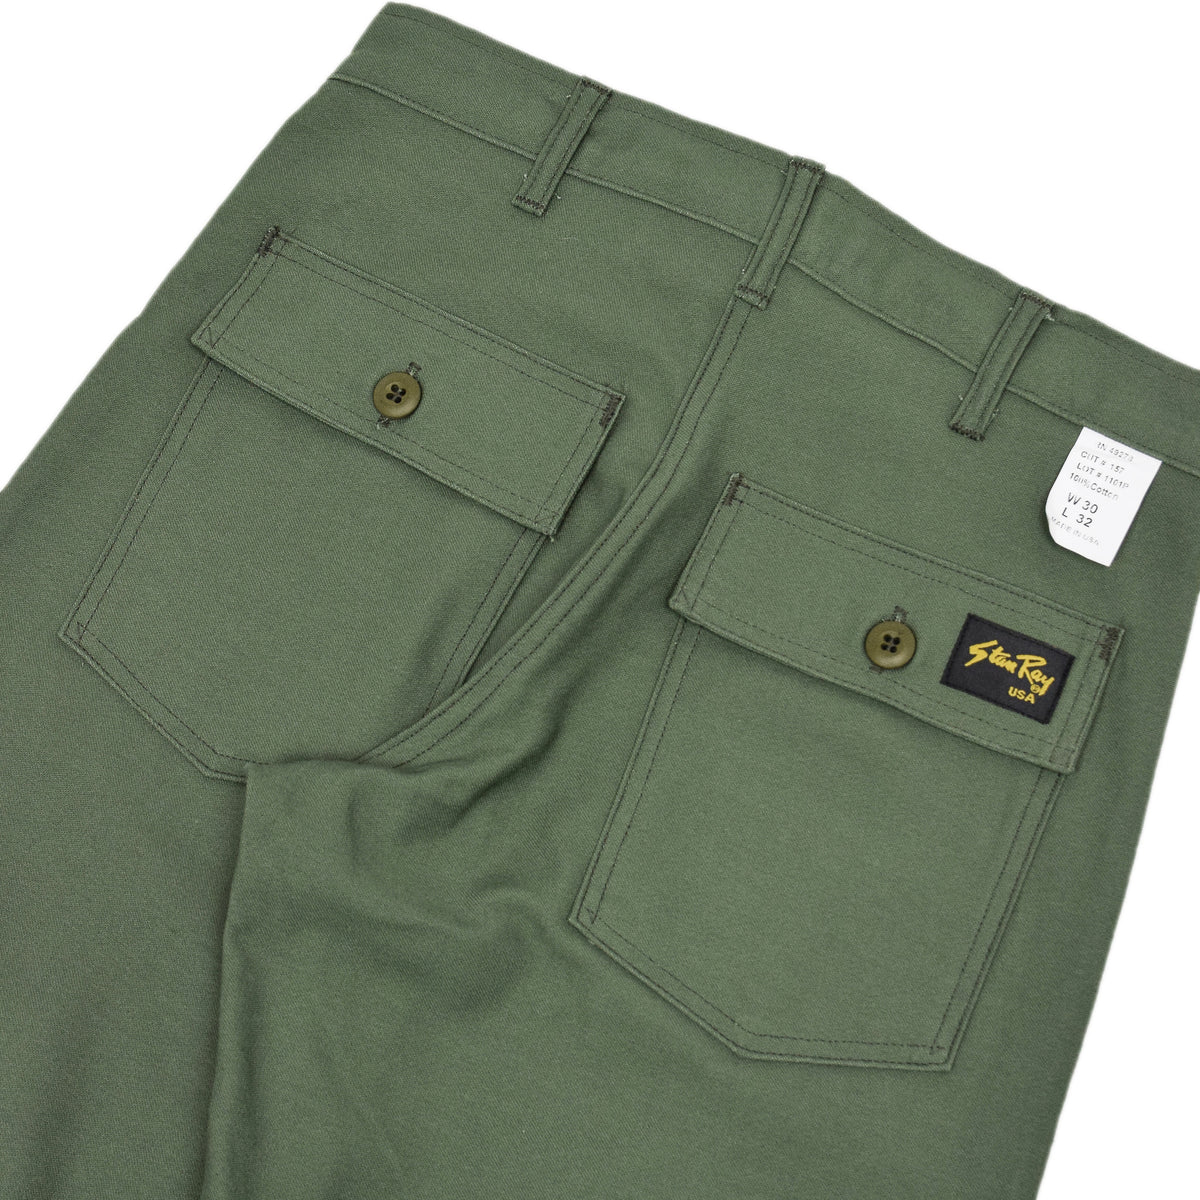 Stan Ray OG Loose Fatigue Trouser Olive Sateen Made in USA back details